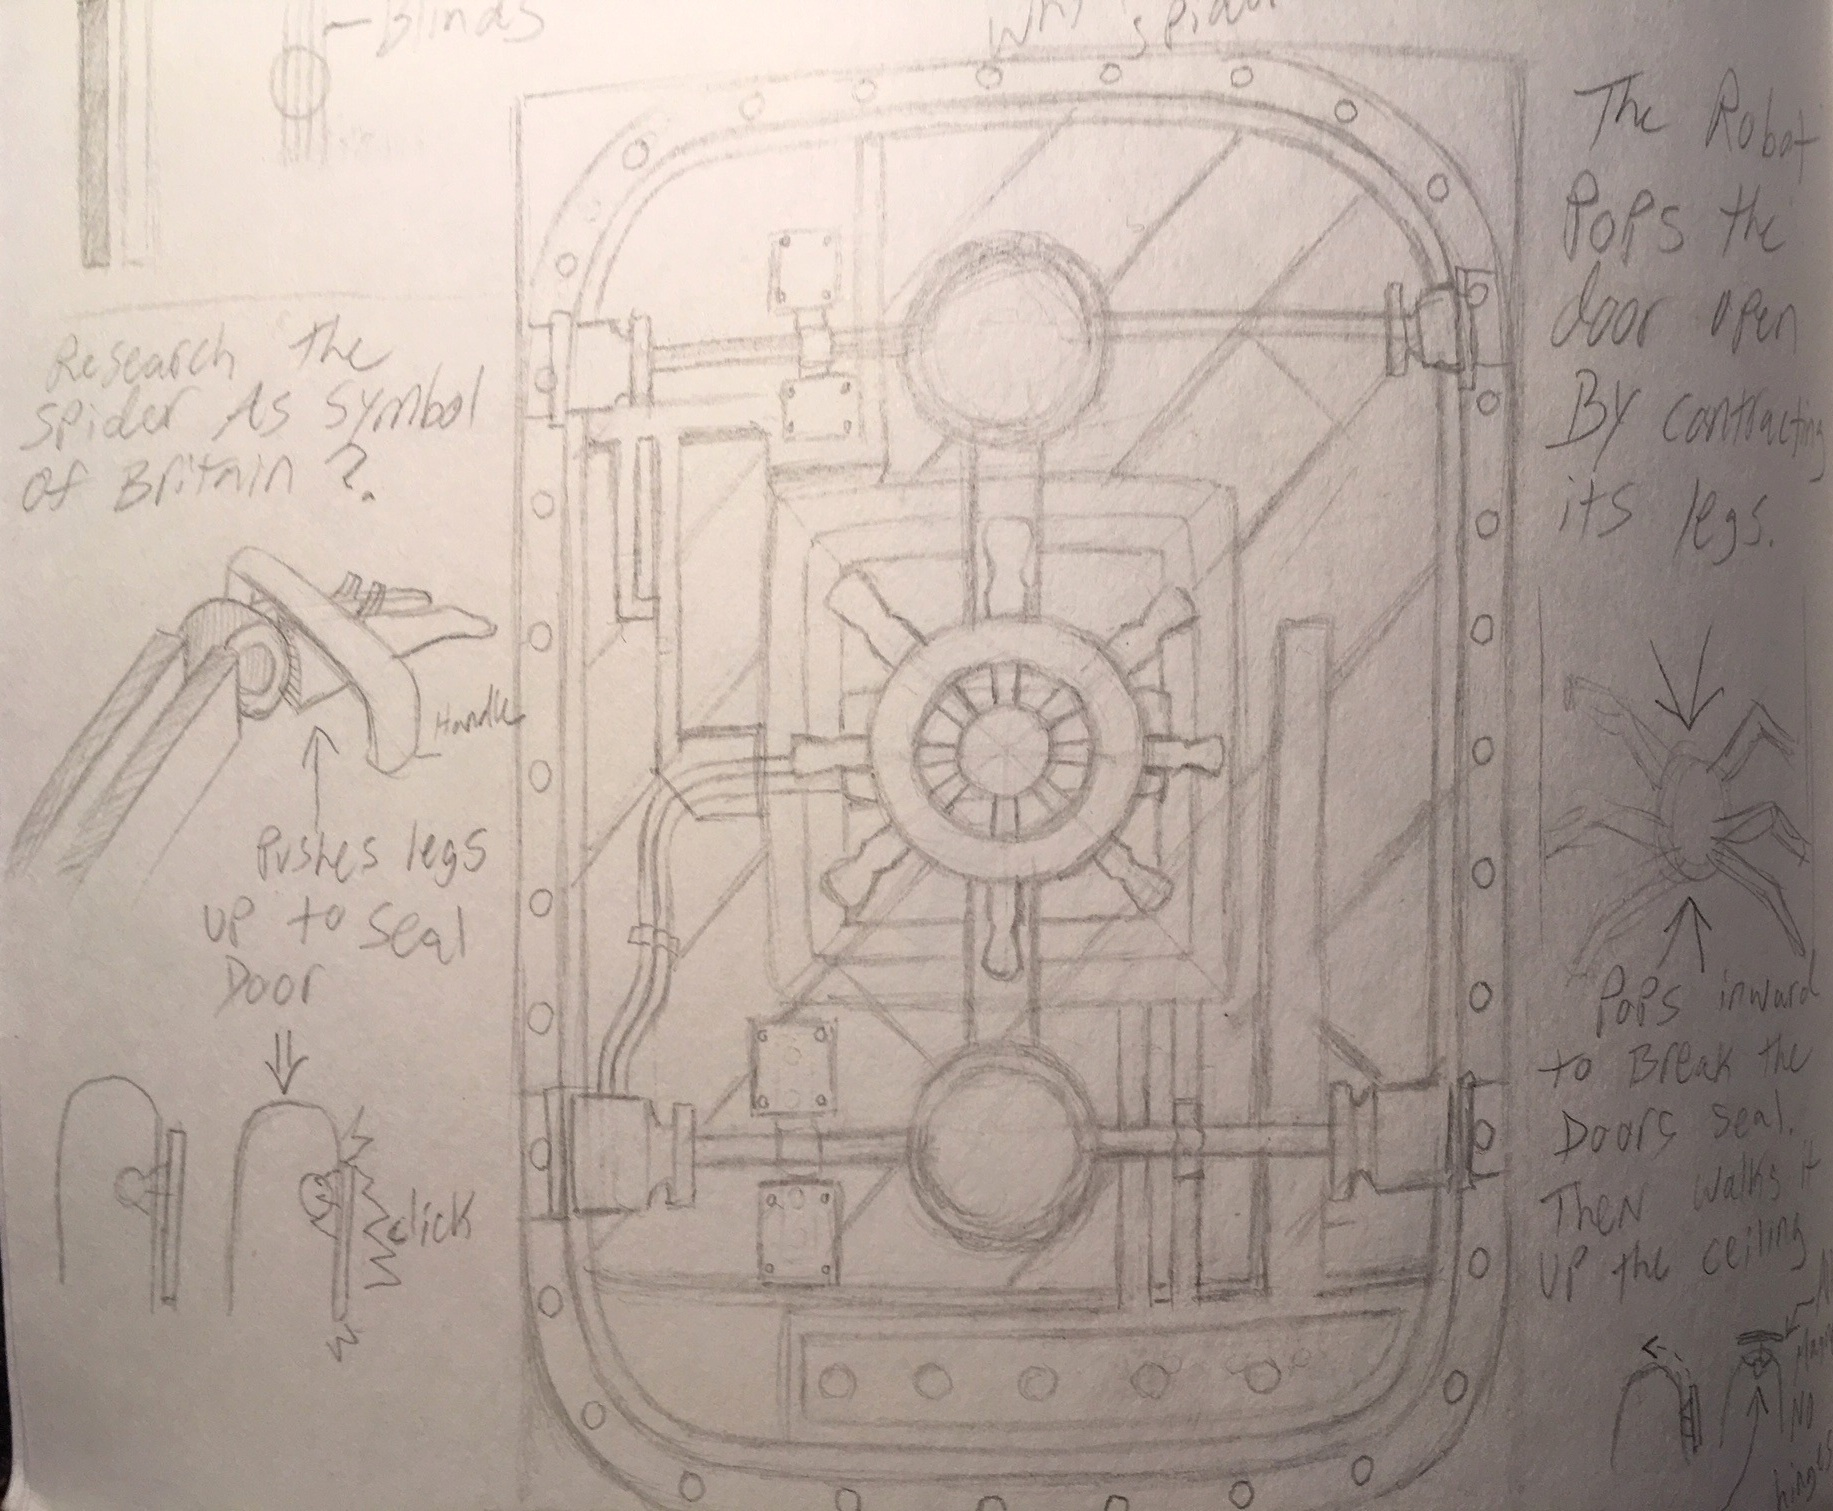 Copy of Sketch and reference drawing for door.